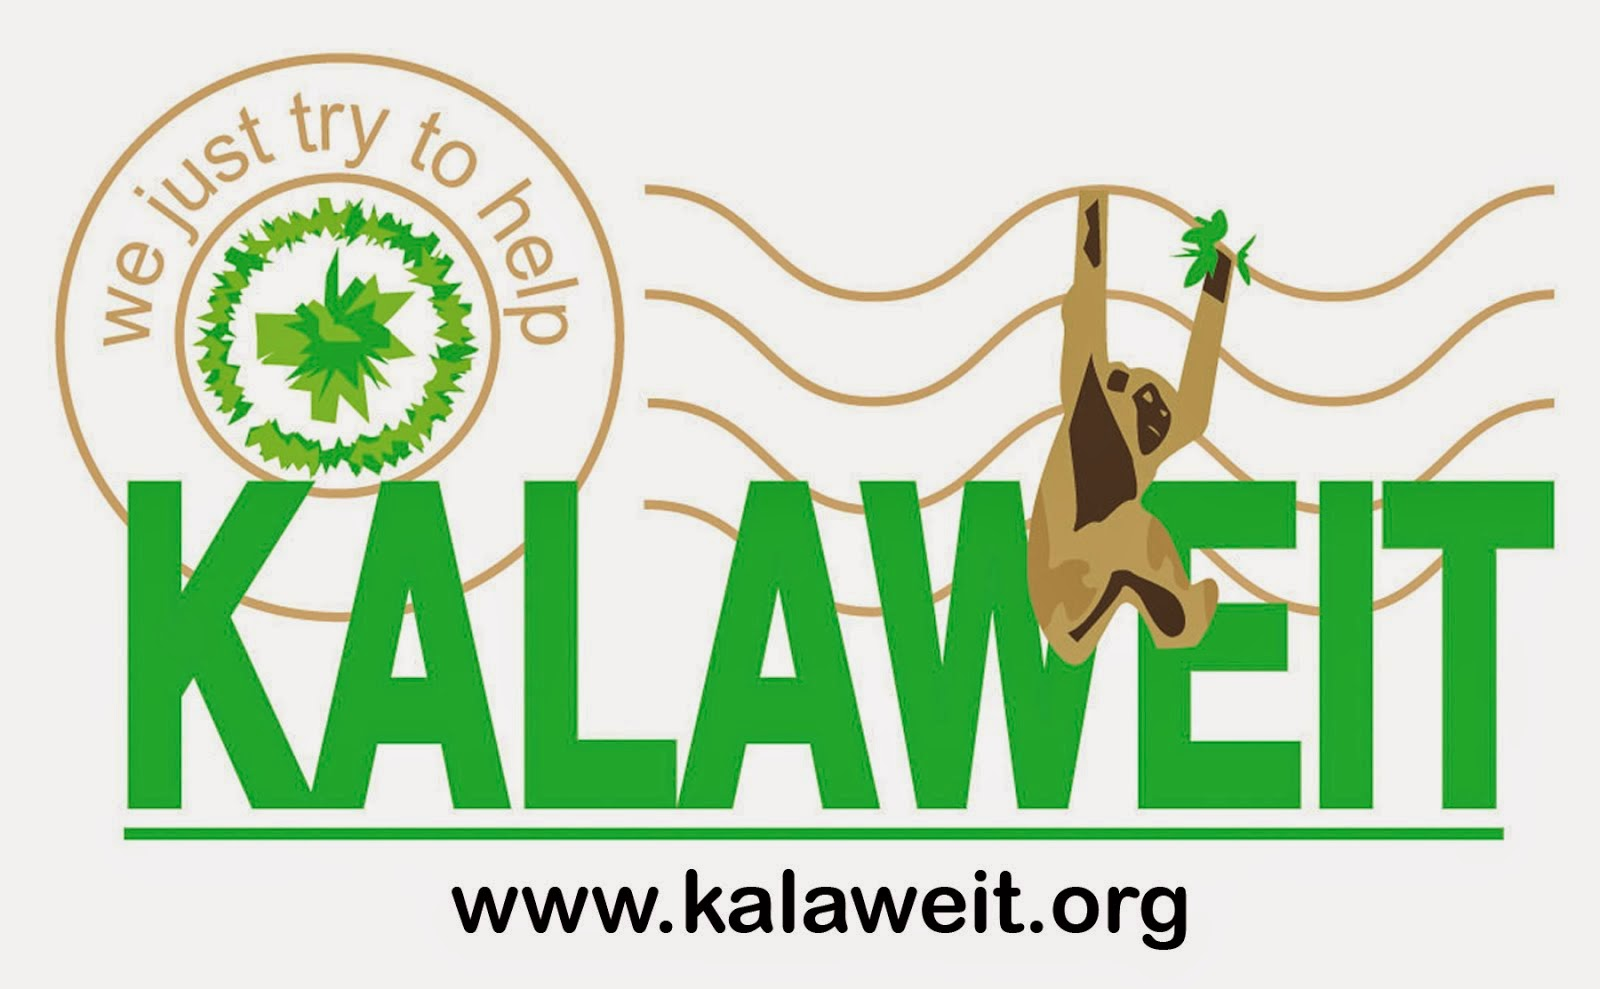 Kalaweit Website